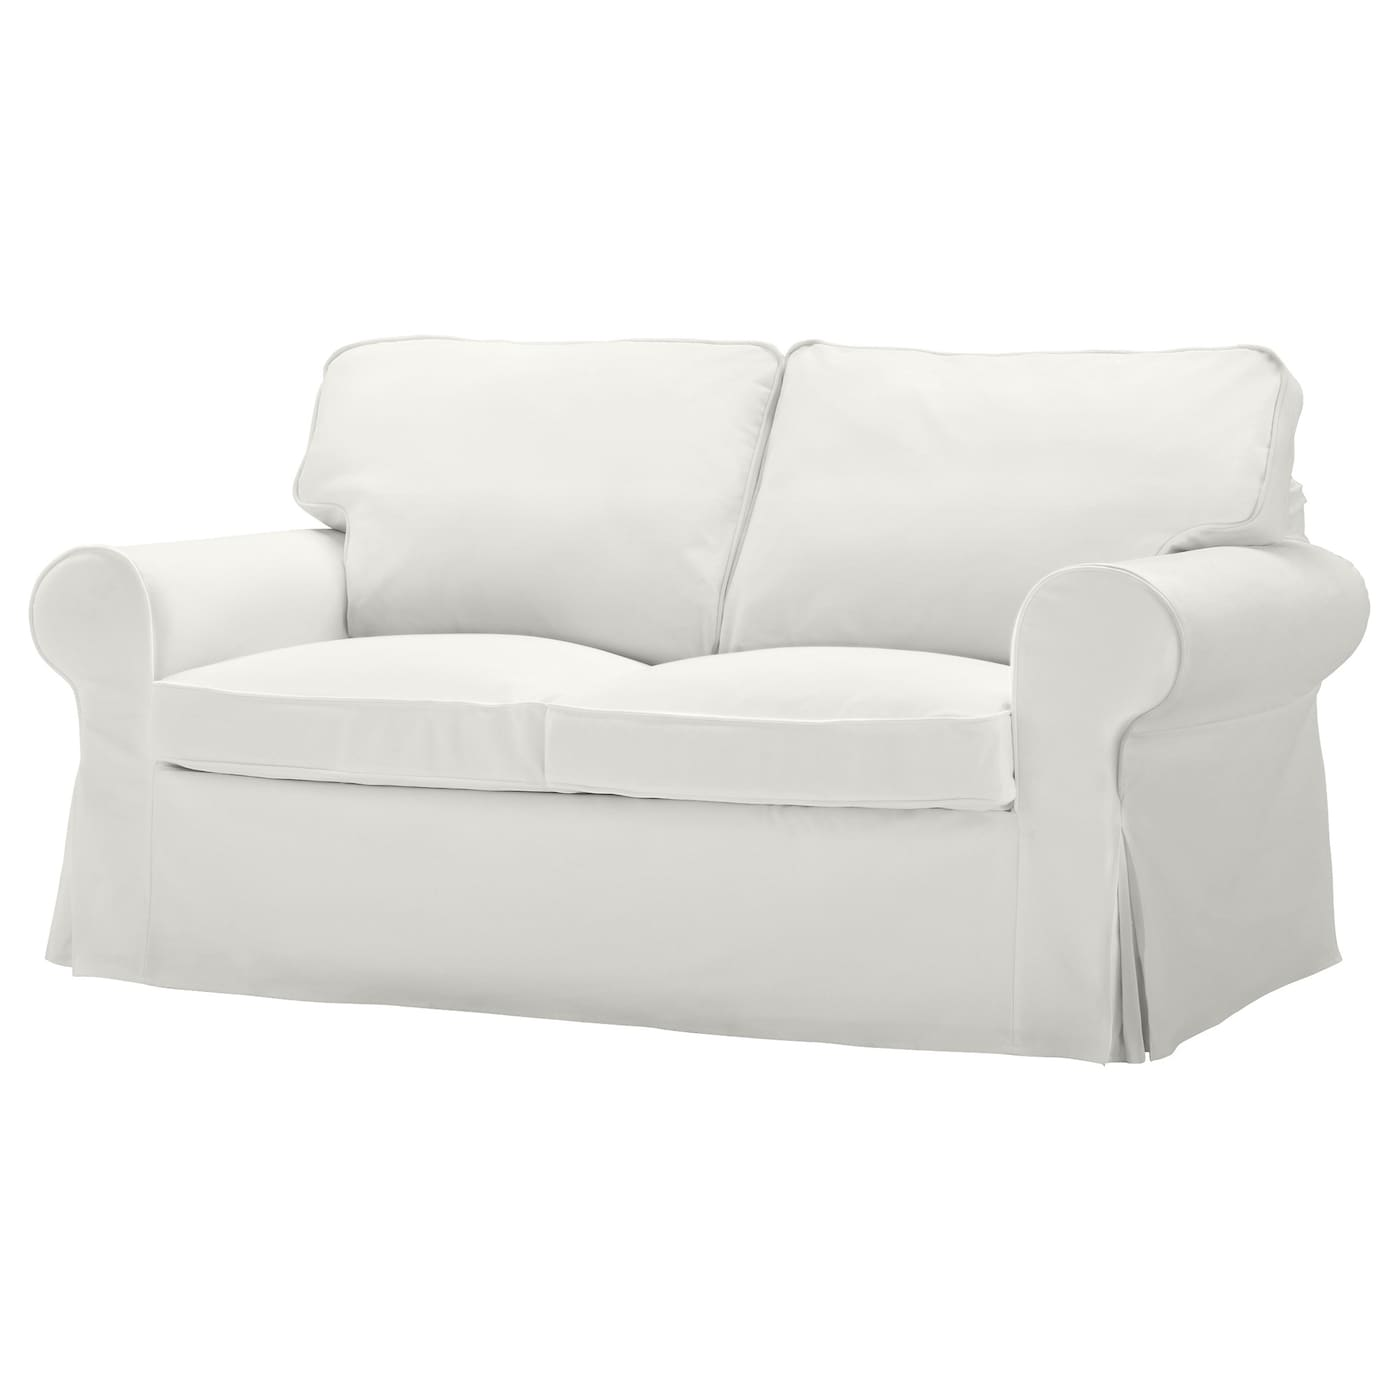 IKEA EKTORP Cover Two Seat Sofa